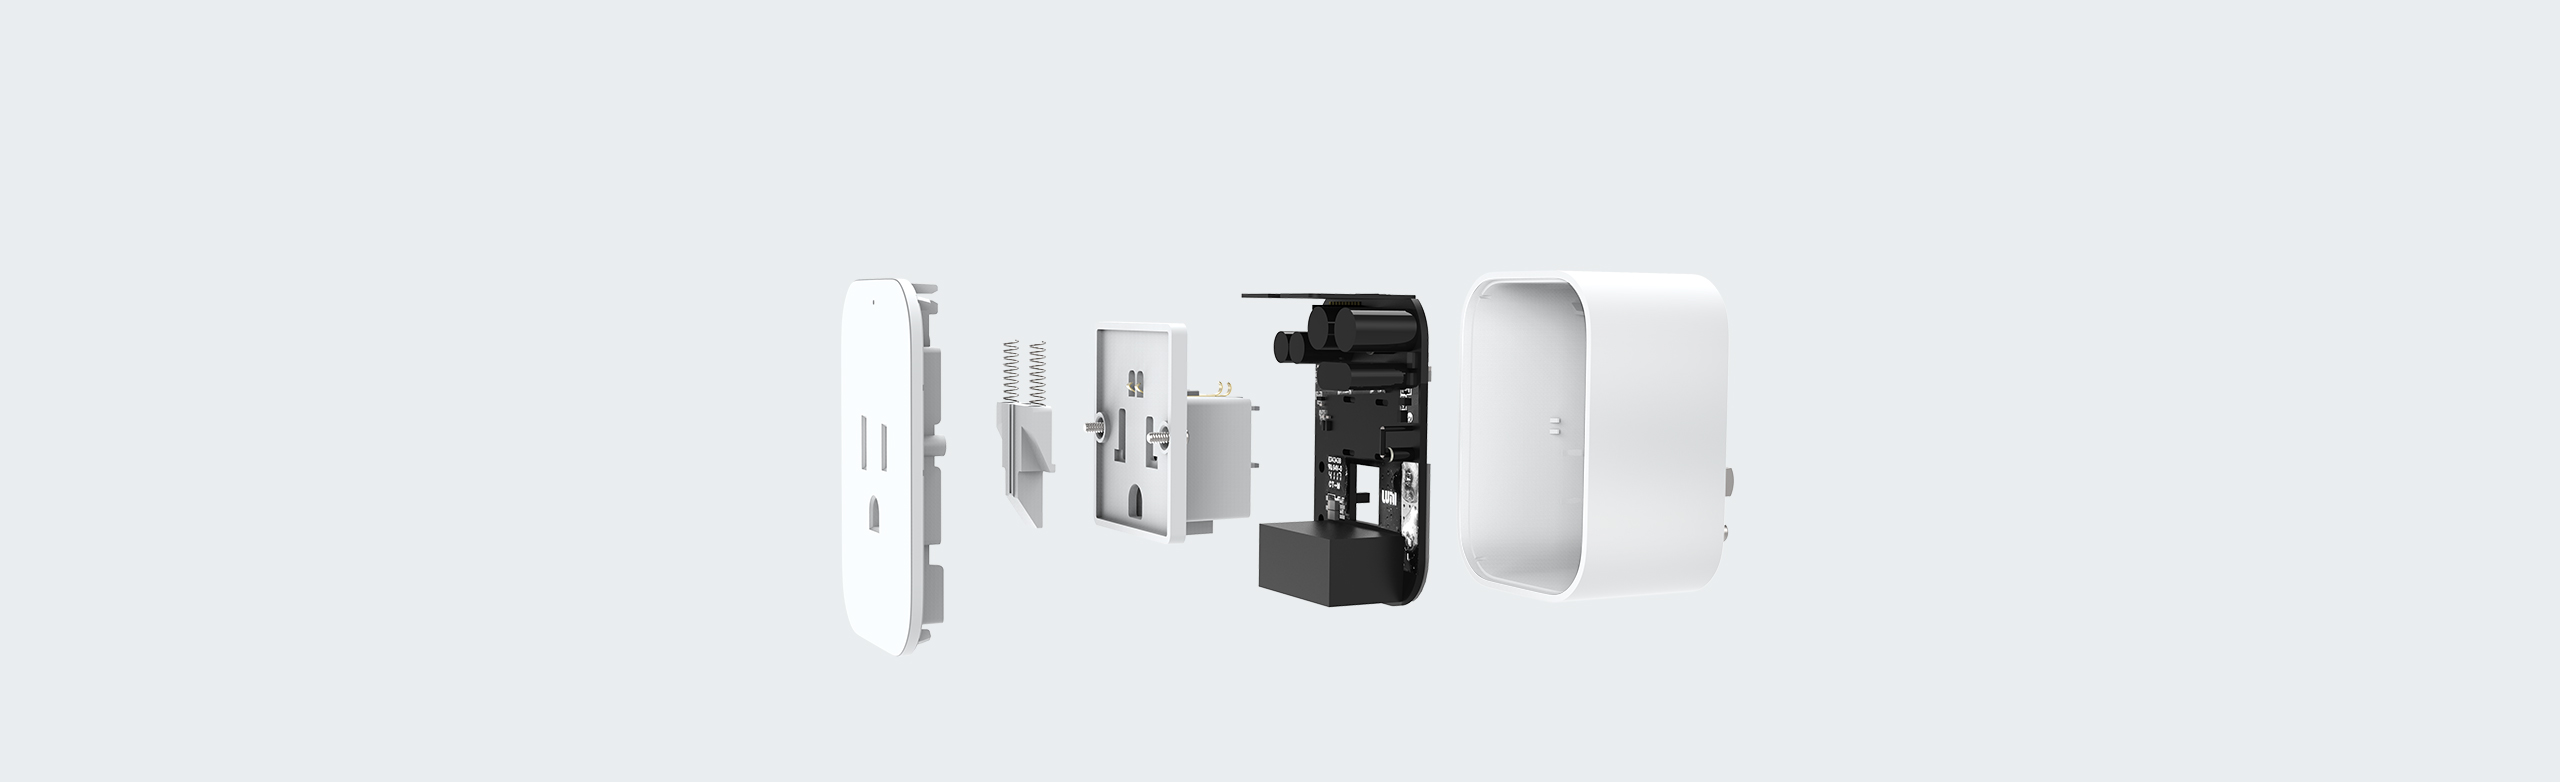 Aqara smart outlet details